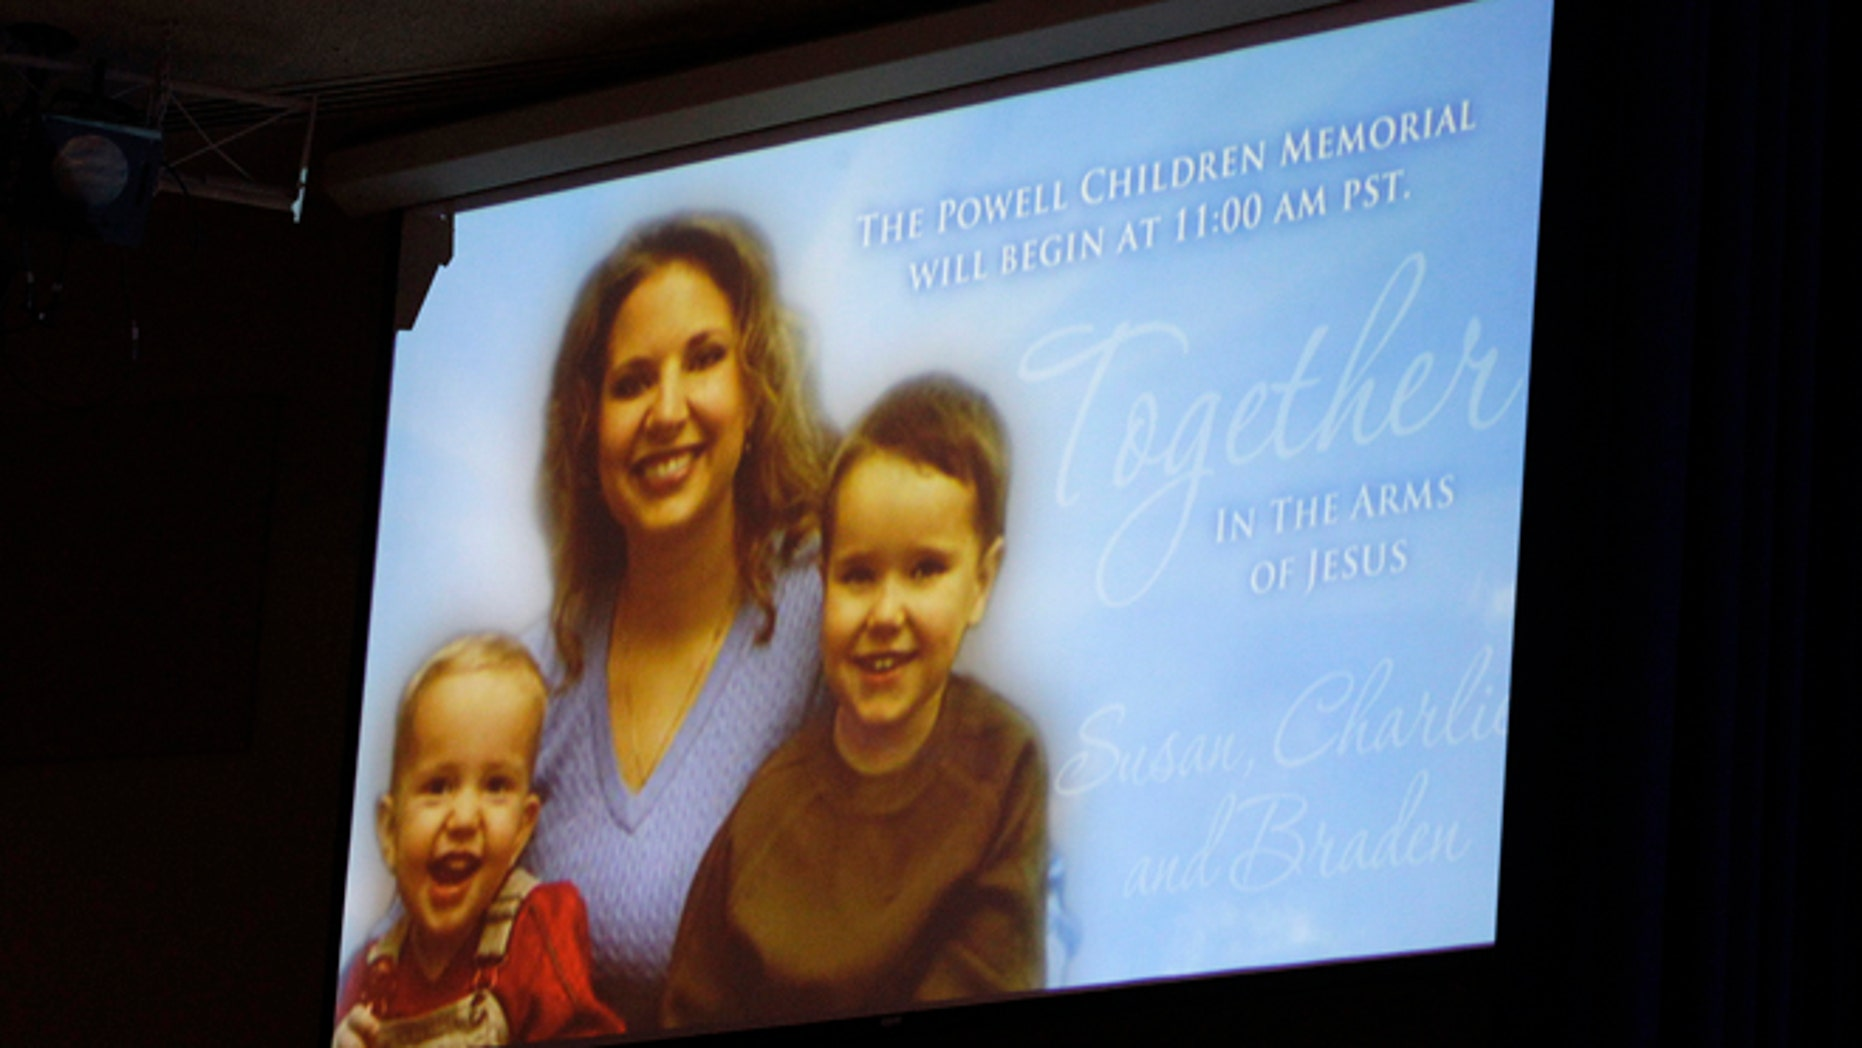 A picture of Susan Powell is seen on a screen with her children Charles (R) and Braden Powell during funeral services for the boys in Tacoma, Wash., Feb. 11, 2012.